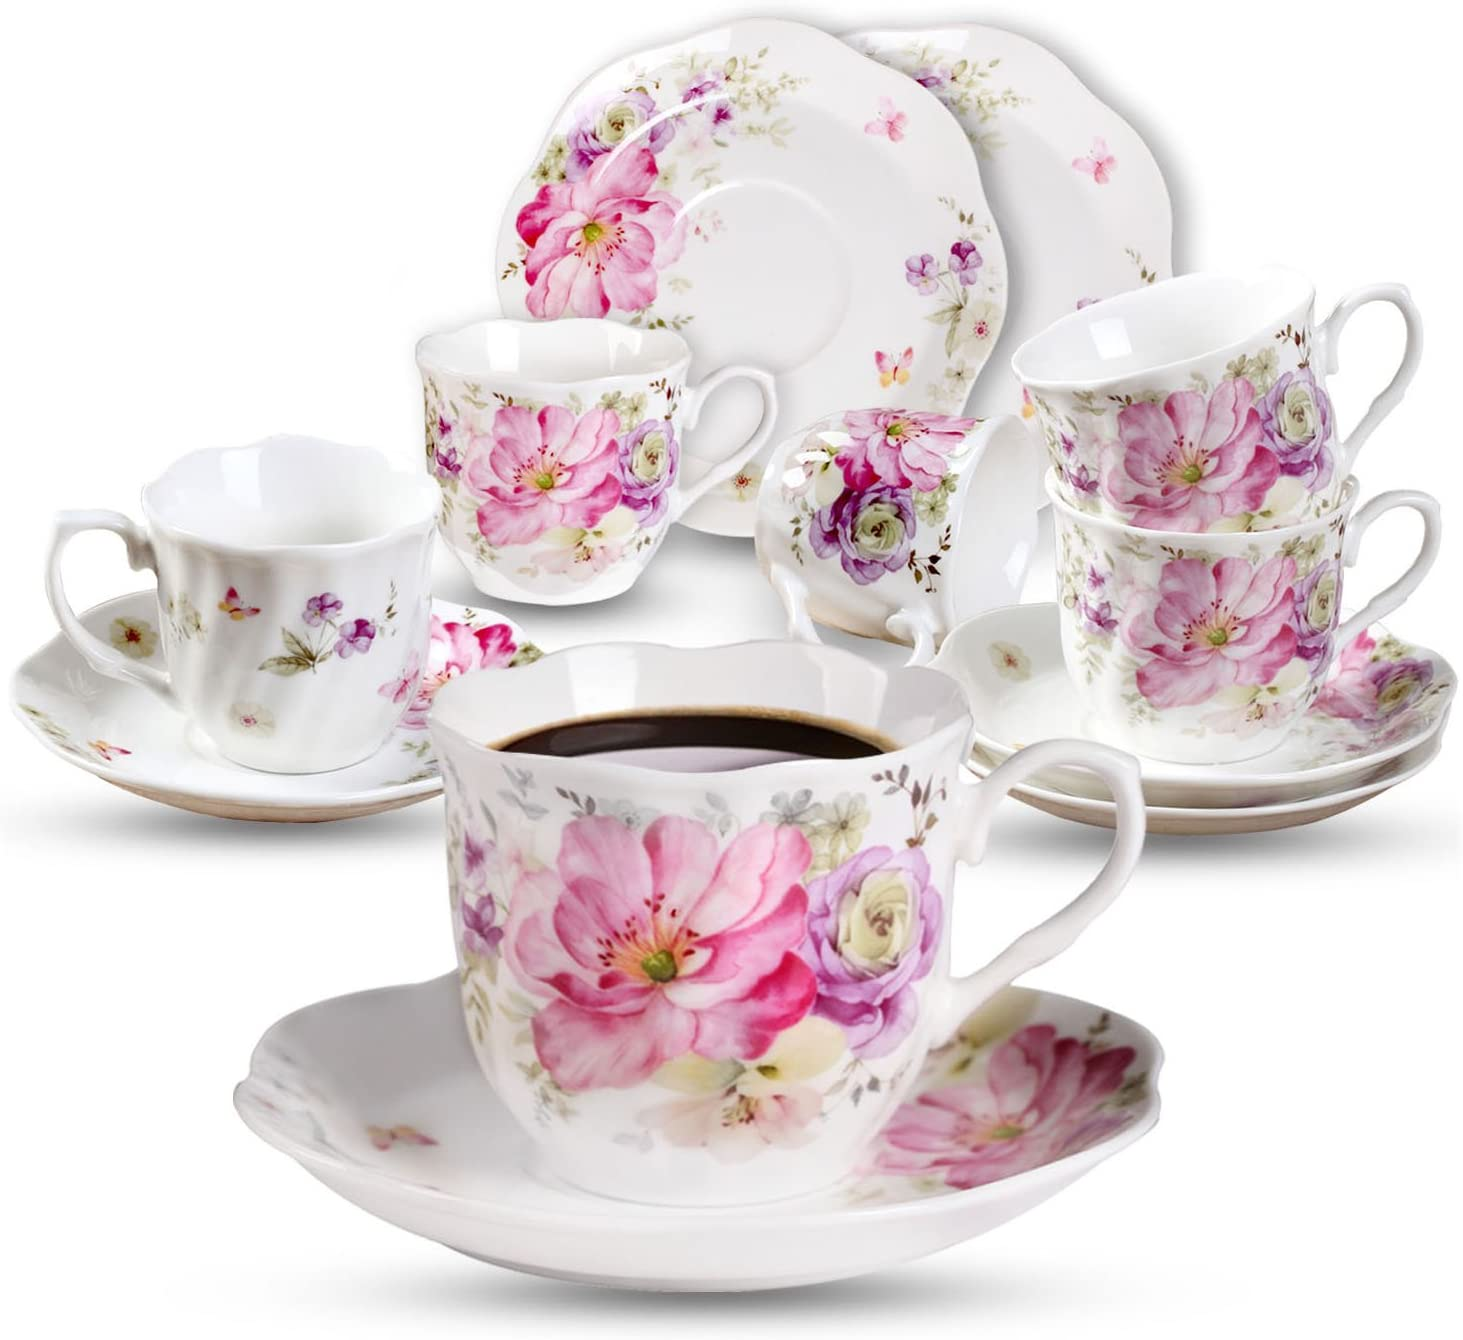 GuangYang White Ceramic Espresso Cups and Saucers - 2.8 ounce-Set of 6 -Mini Porcelain Coffee Cup Set - Fancy Flower Pattern Design(Total 12 Pieces)